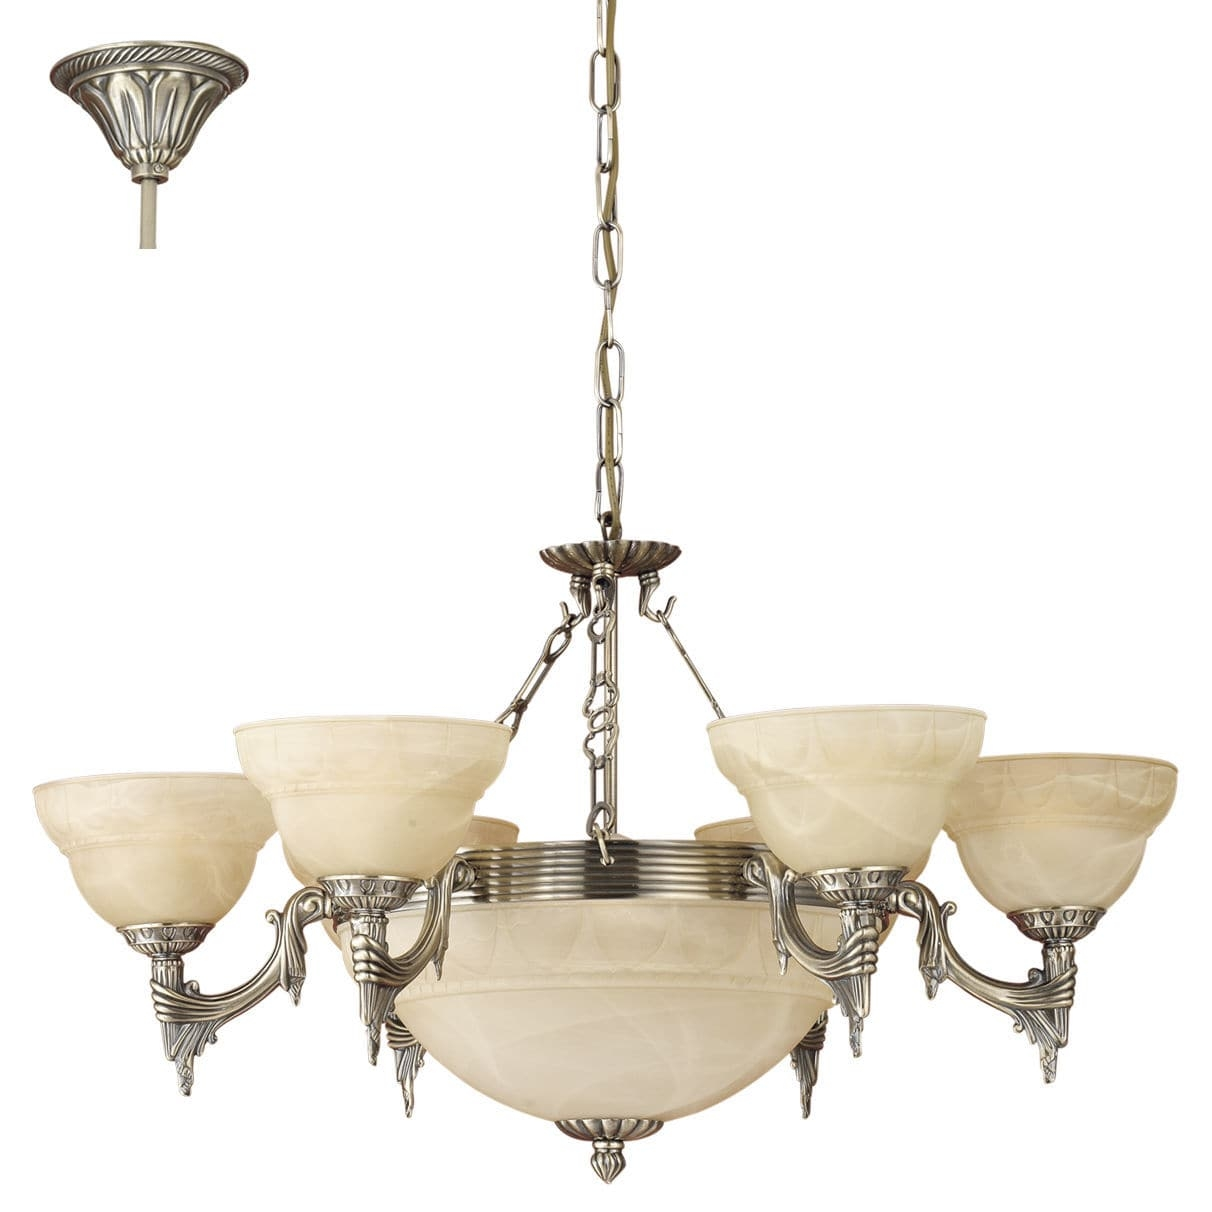 Traditional Chandelier Glass Metal Incandescent Marbella For Traditional Chandelier (#7 of 12)